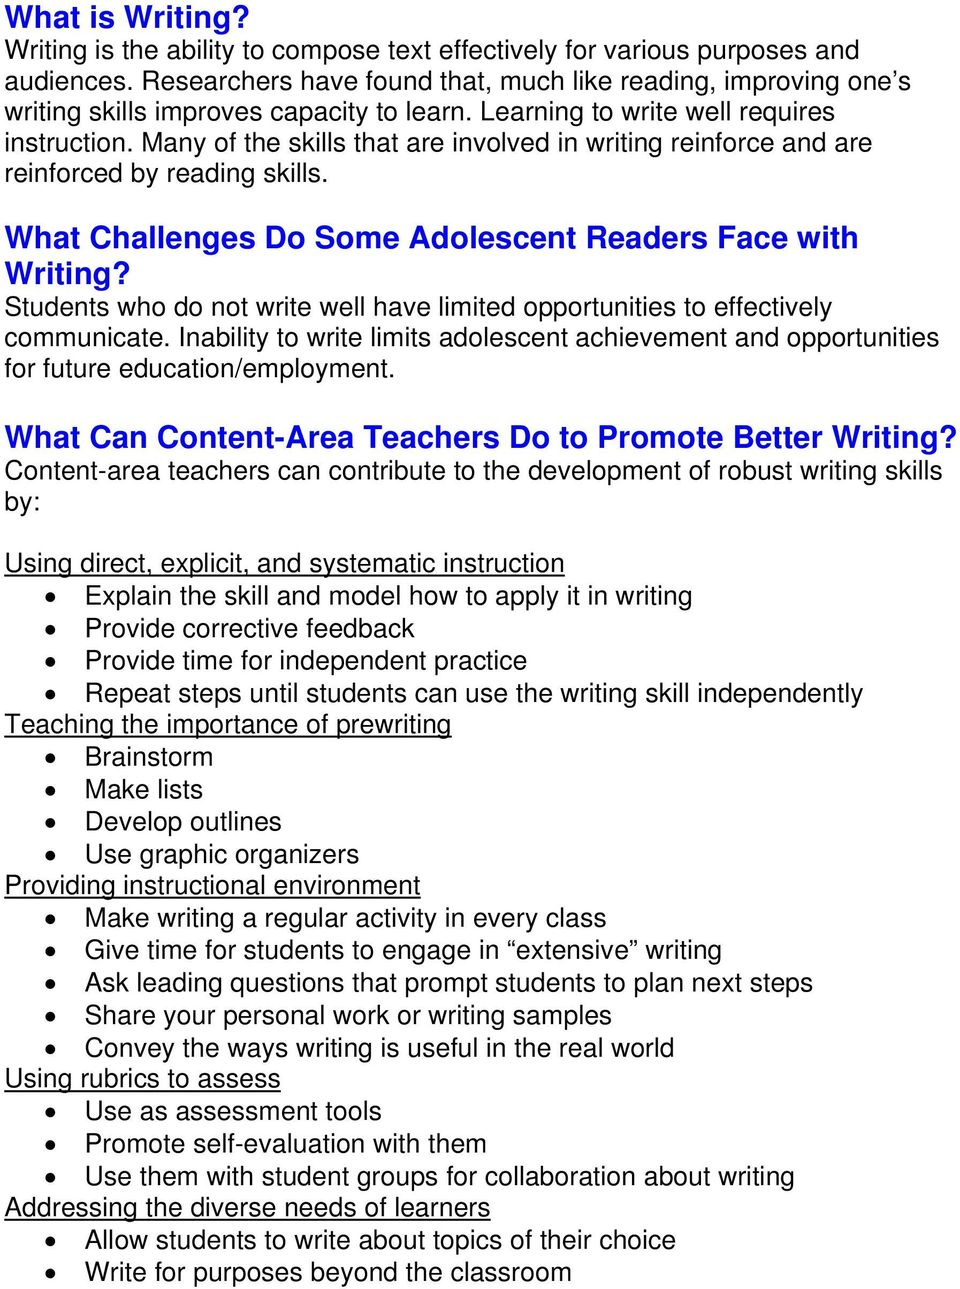 Many of the skills that are involved in writing reinforce and are reinforced by reading skills. What Challenges Do Some Adolescent Readers Face with Writing?